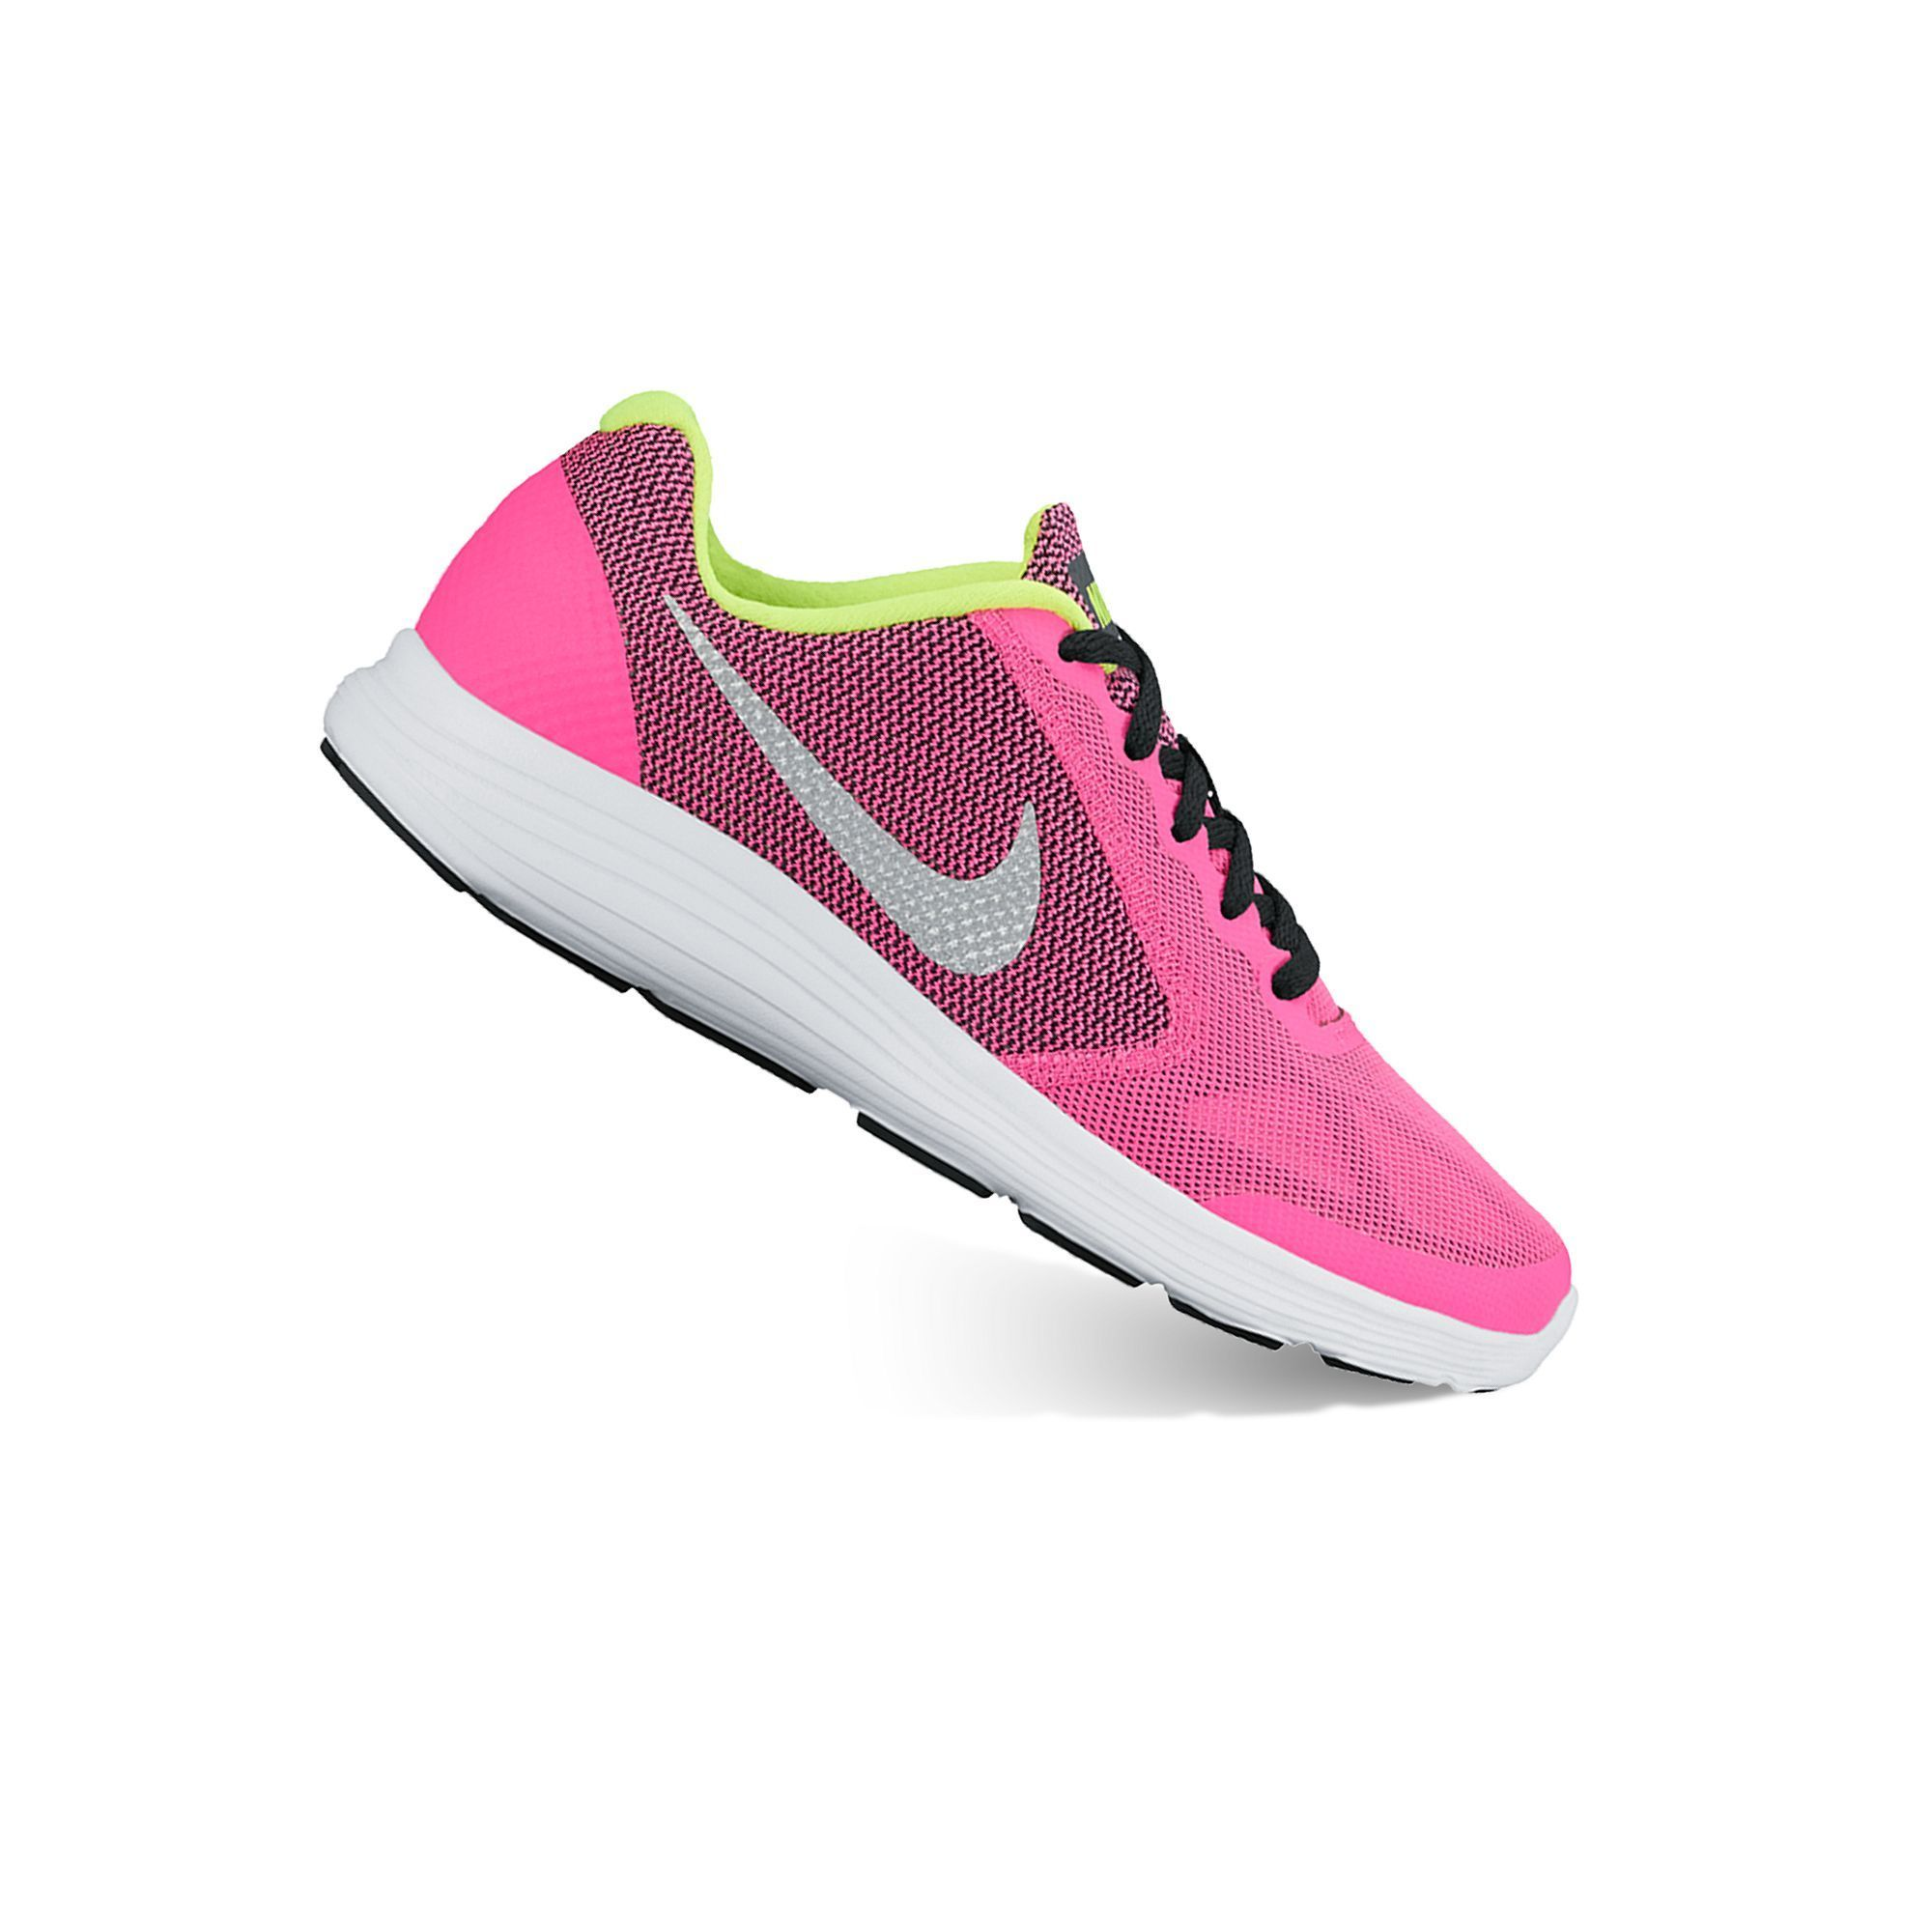 891391ce Nike Revolution 3 Girls' Running Shoes | Products | Nike revolution ...